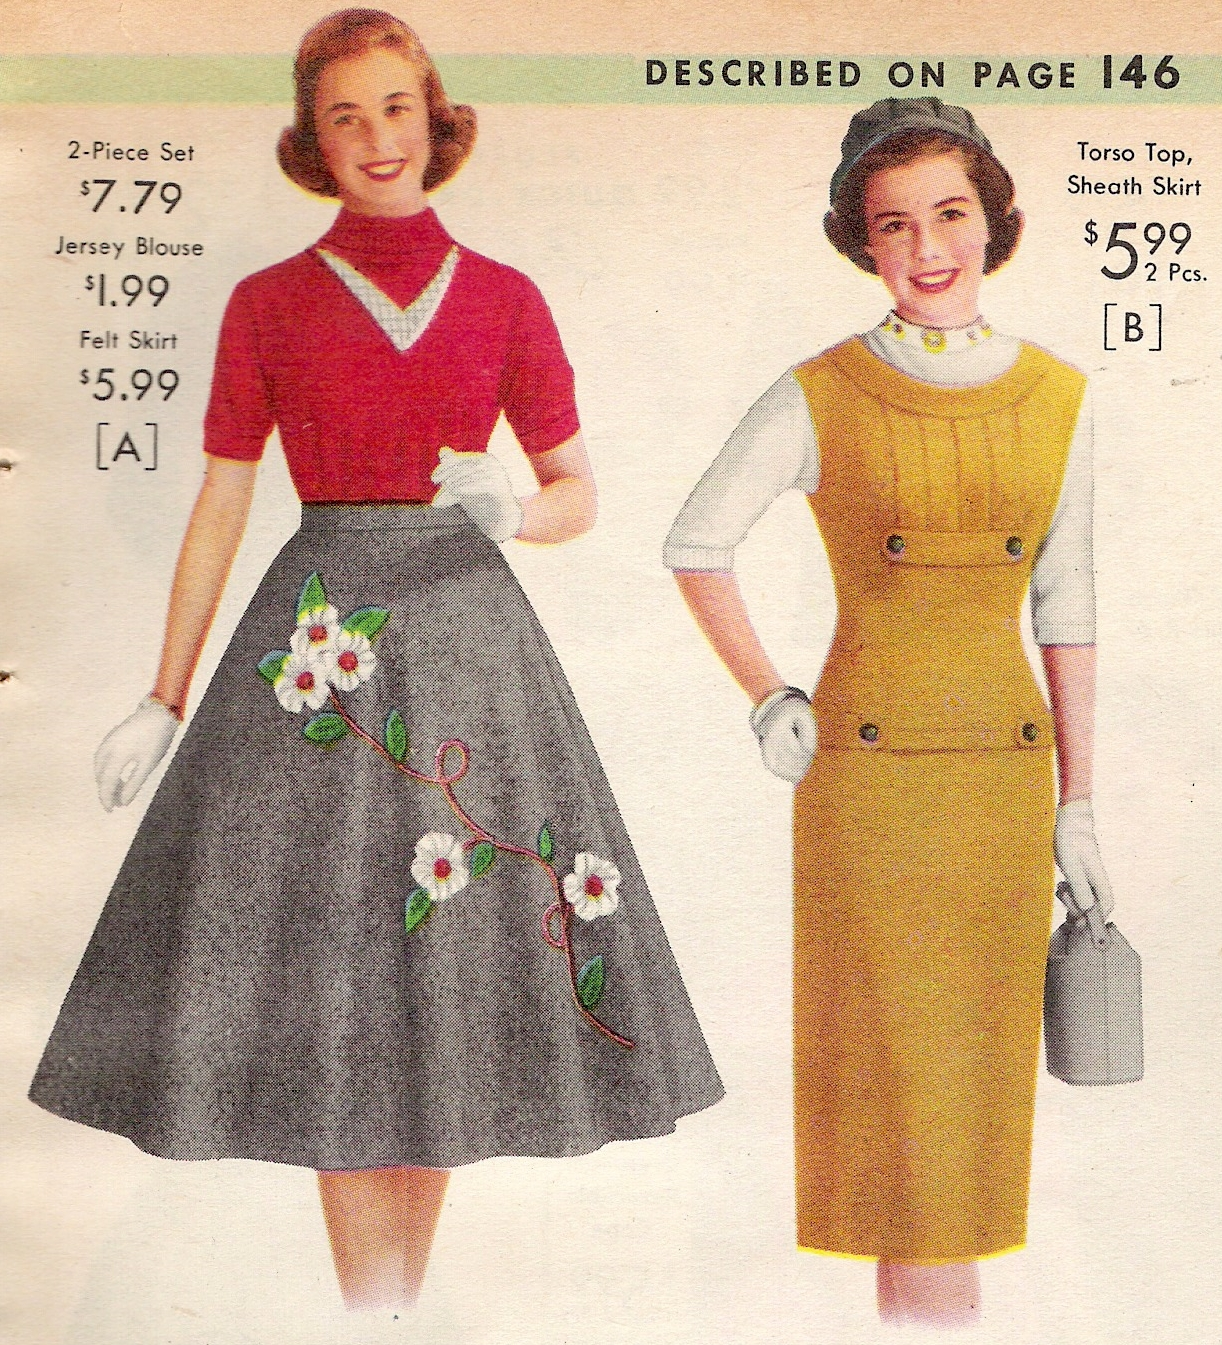 1940s Inventions We Still Love- Food, Games, Fashion